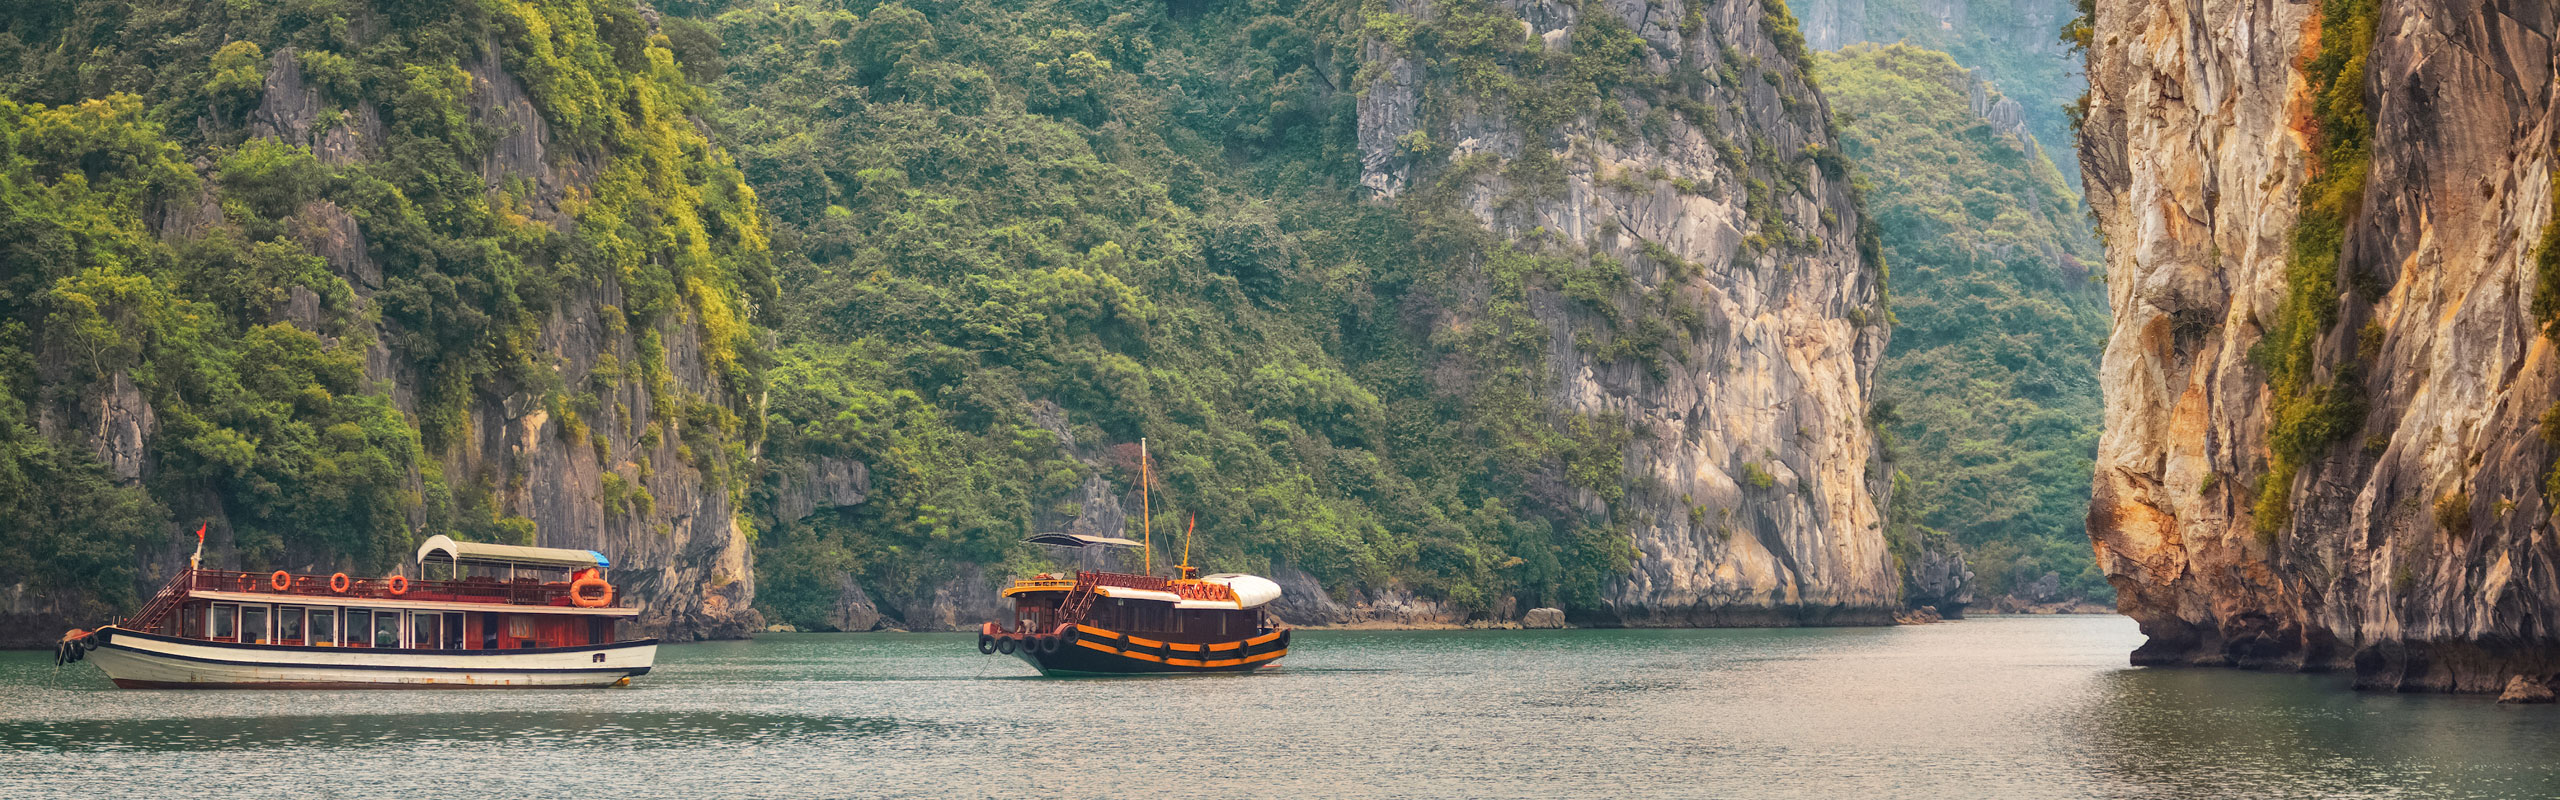 7-Day Real Experience Cambodia and Vietnam Tour